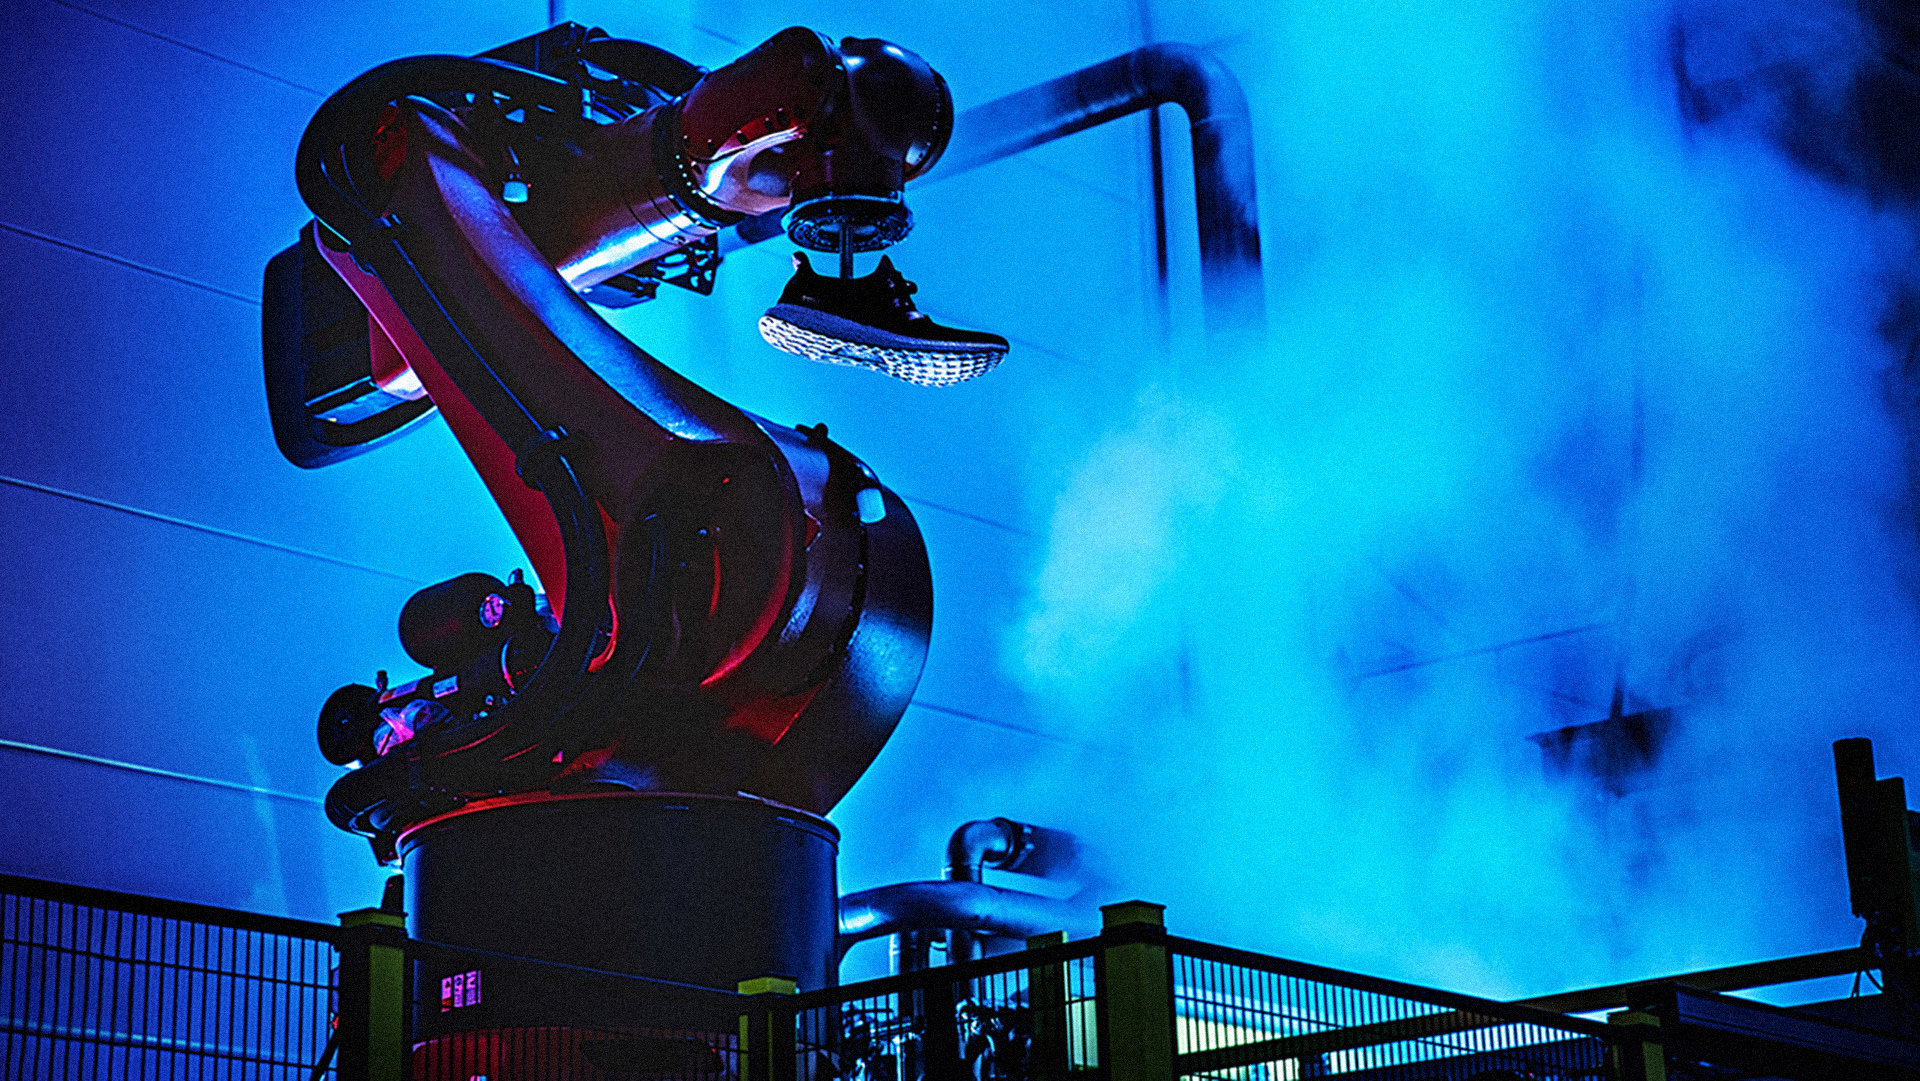 3054380-poster-p-1-adidas-robot-powered-speed-factory-aims-to-bring-custom-production-to-local-markets